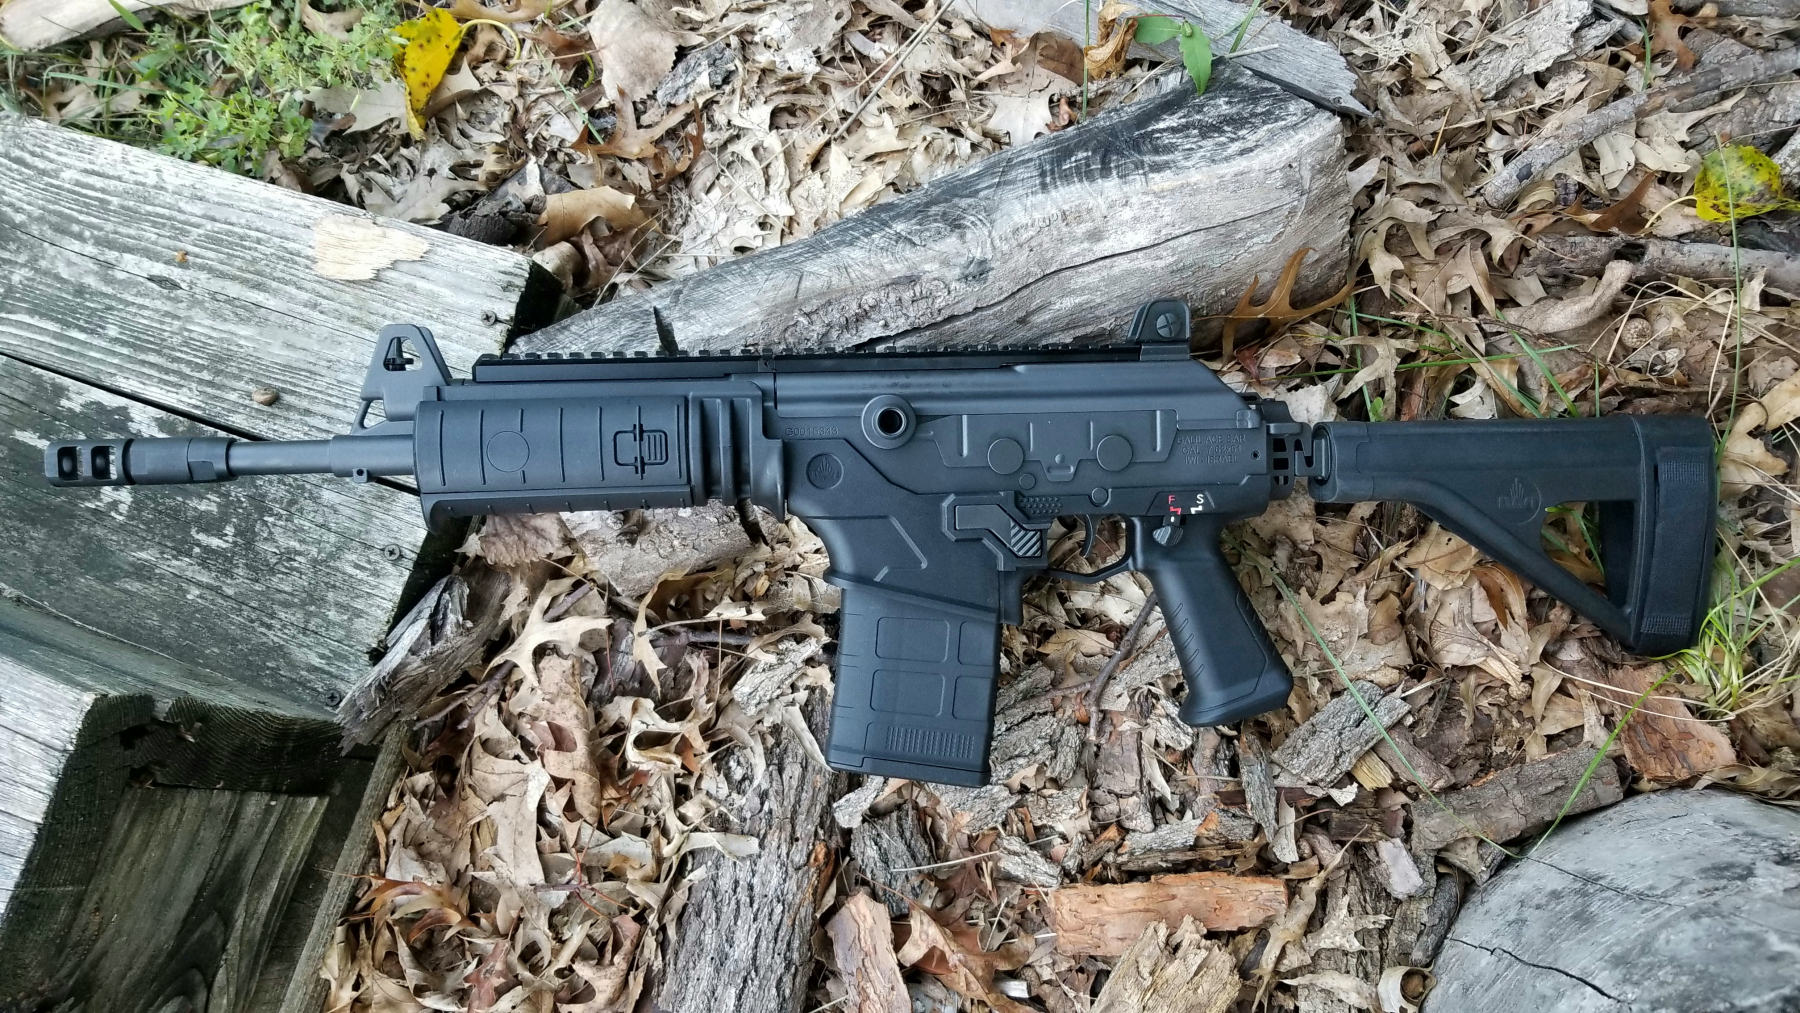 Non-operating side.  The pistol uses Magpul LR/SR magazines.